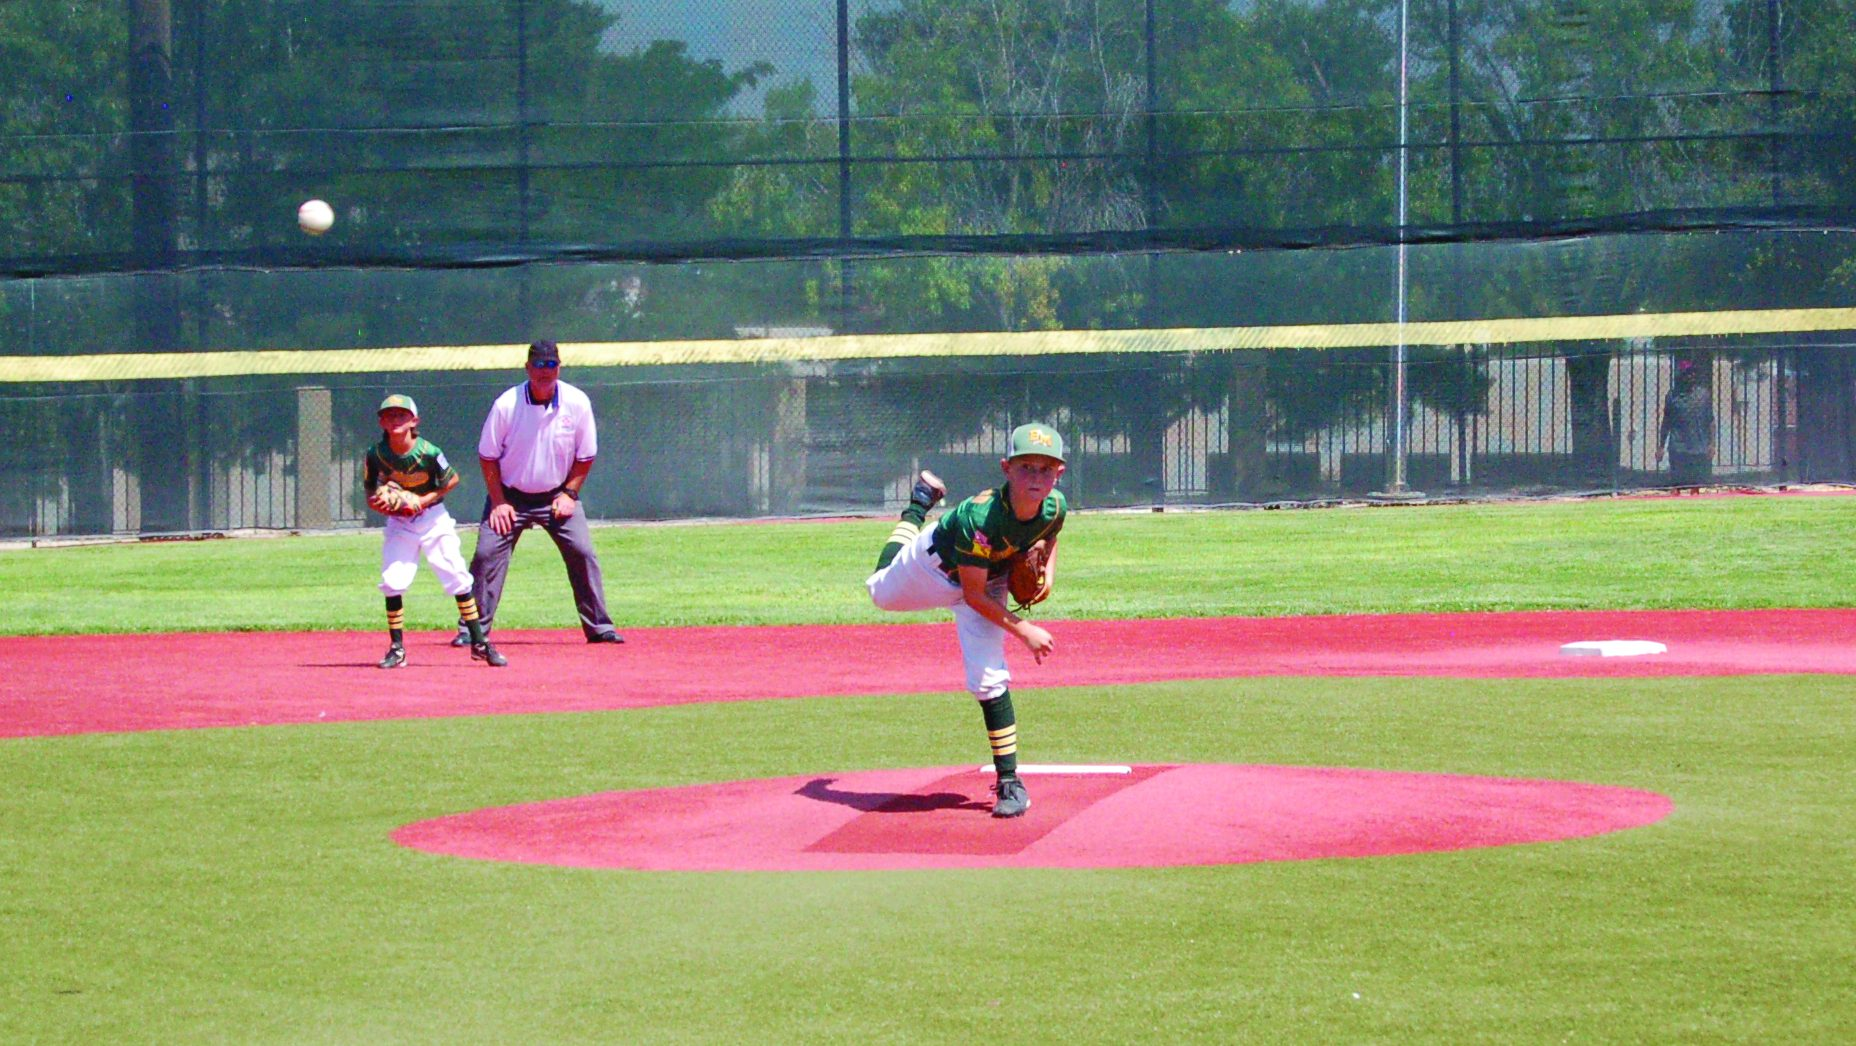 East Mountain Little League 8-10 All-Stars put up good fight before coming up short in state tourney